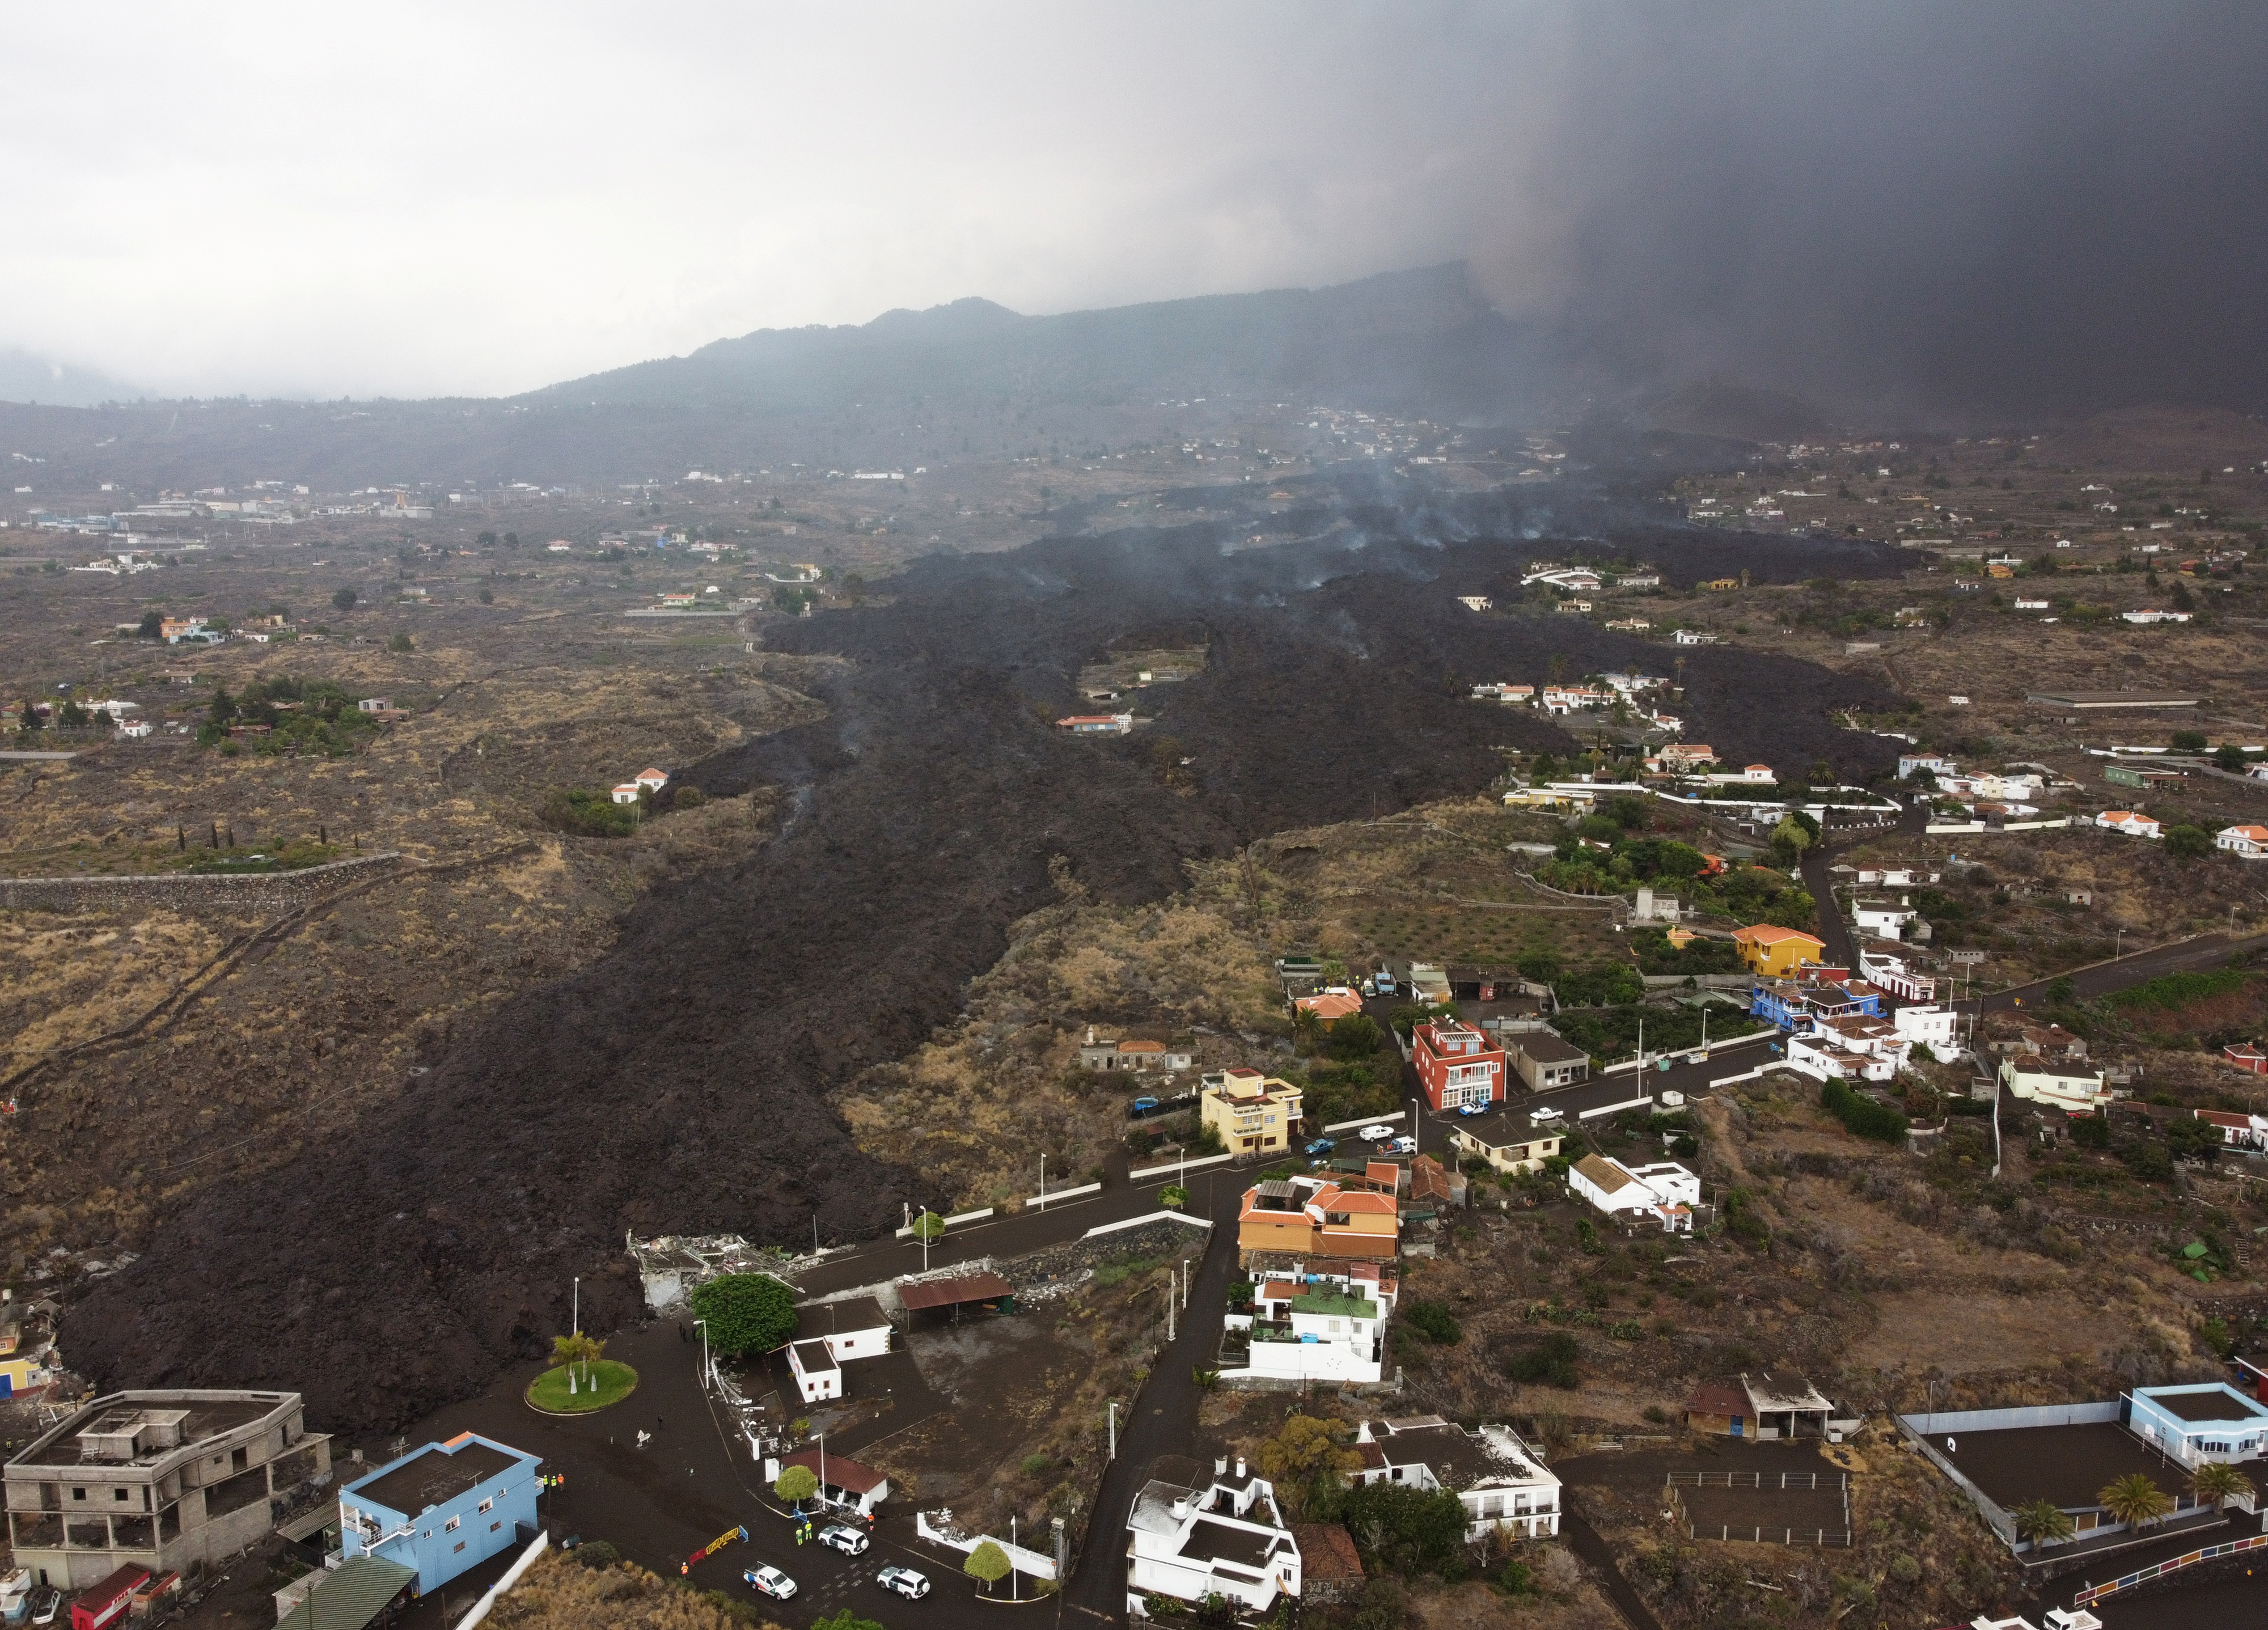 Smoke rises from an erupting volcano in the Cumbre Vieja national park at Los Llanos de Aridane, on the Canary Island of La Palma, Spain September 22, 2021. Picture taken with drone. REUTERS/Nacho Doce